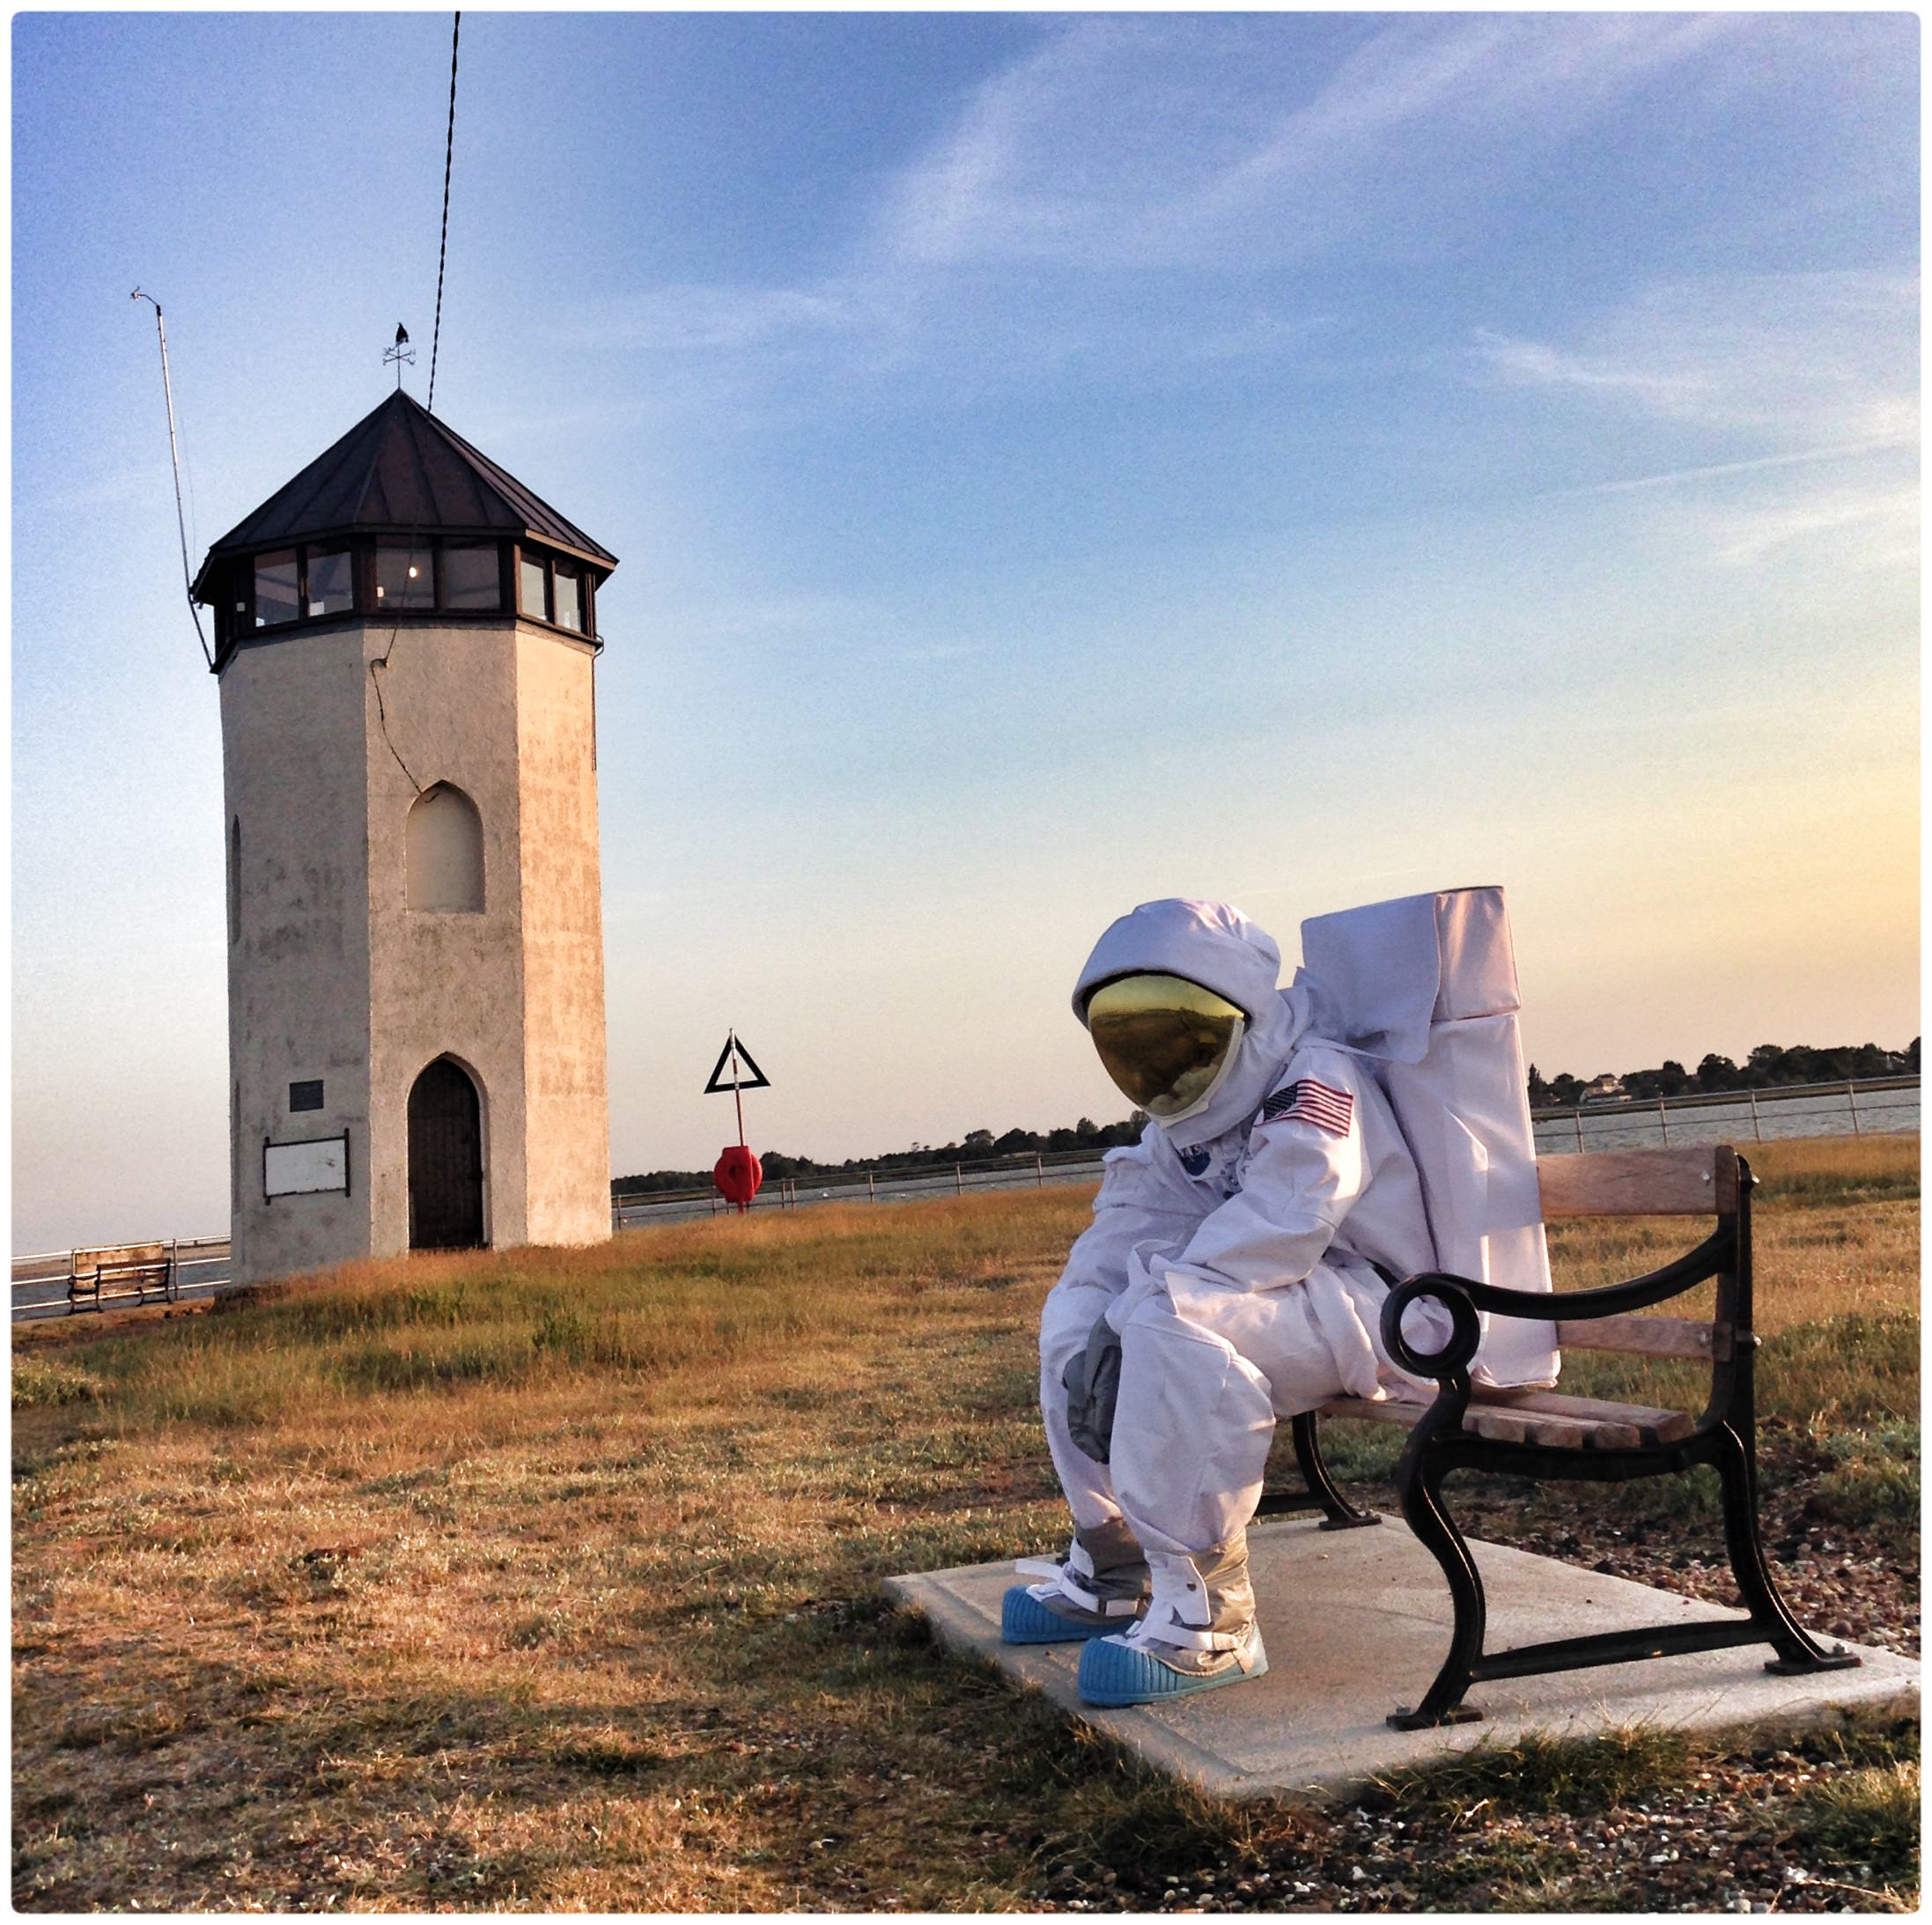 Spacesuit Rental - Now in the UK #GetYourBuzzOn !